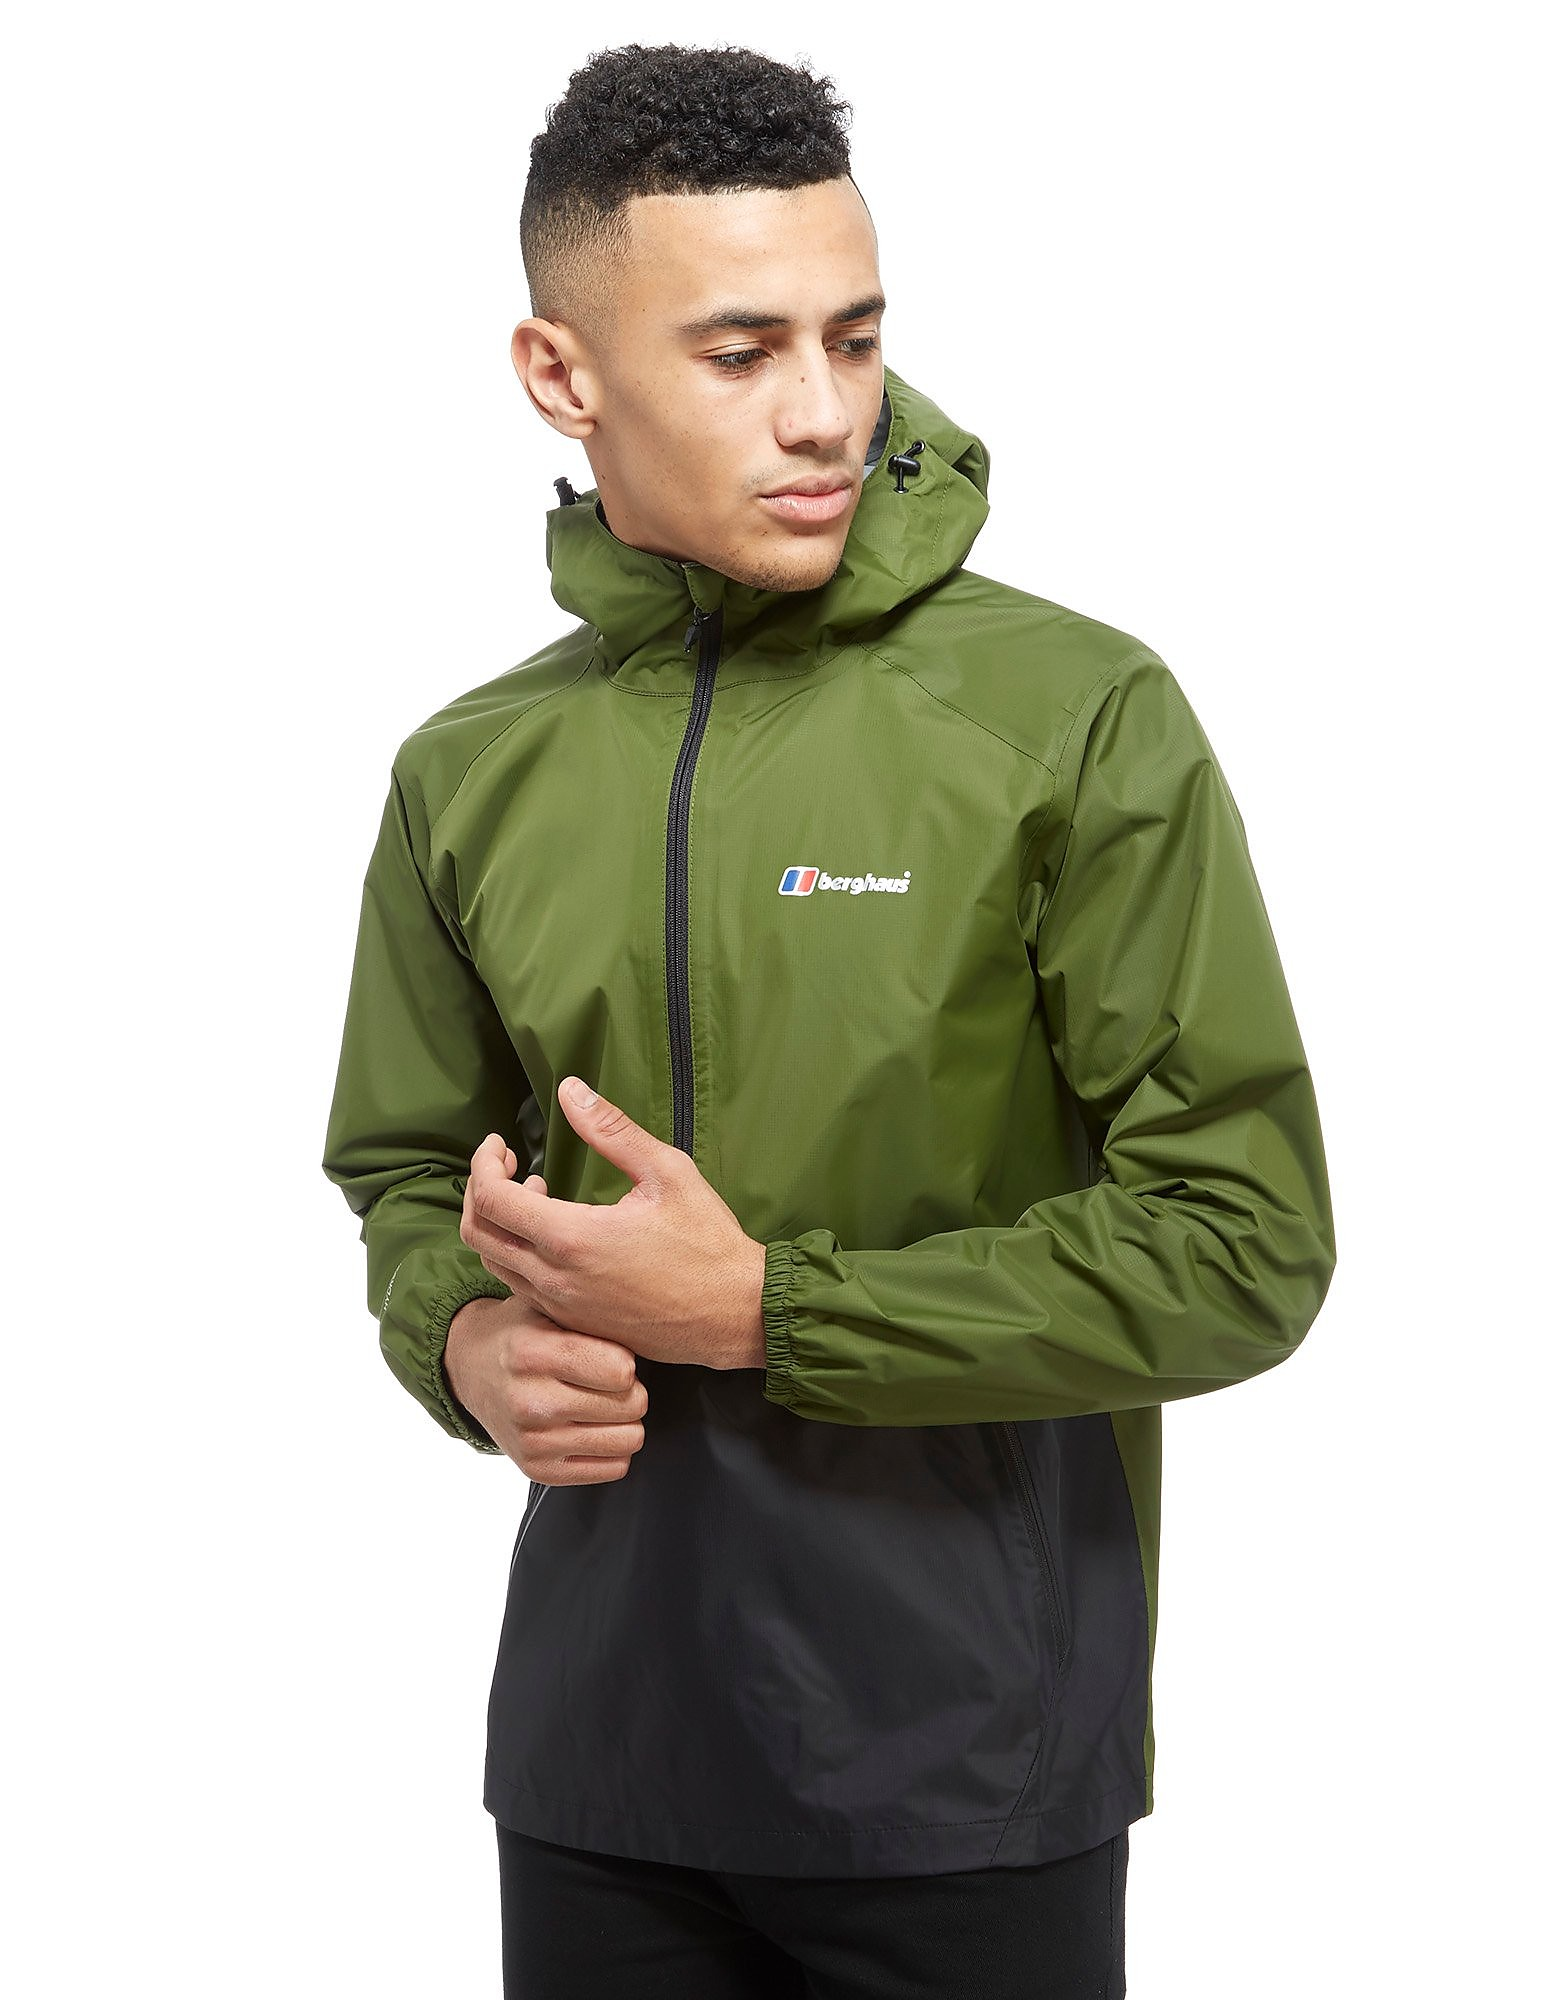 Berghaus Deluge Half Zip Waterproof Jacket